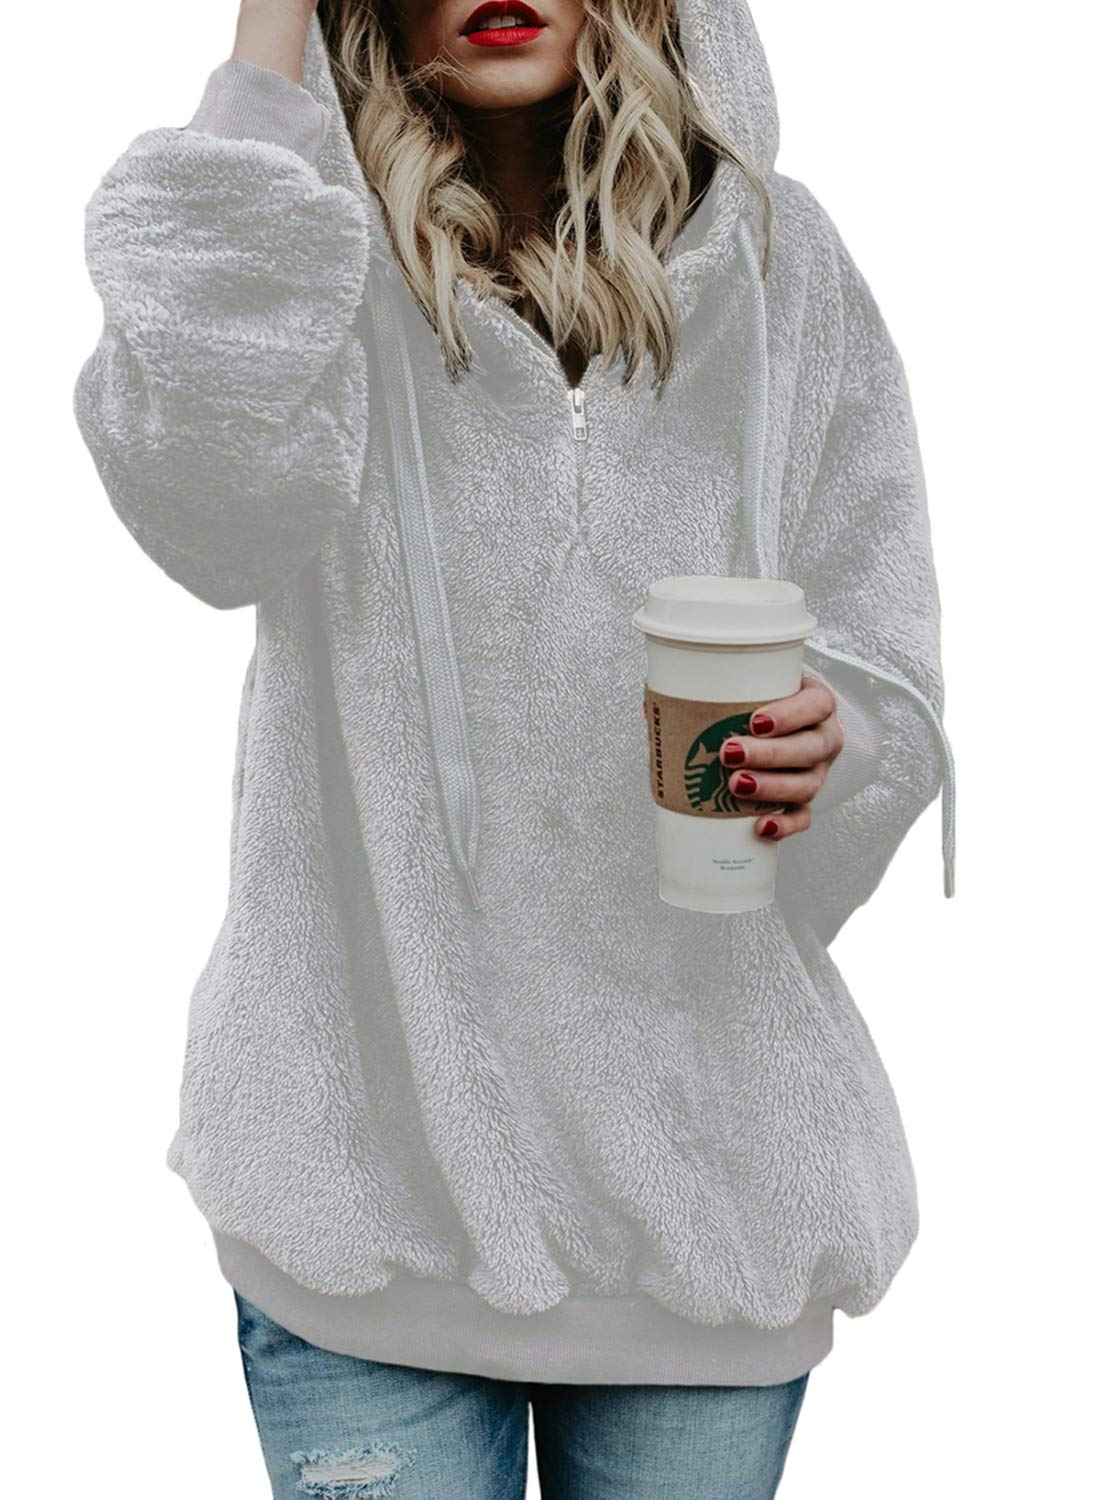 Hooded Sherpa Pullovers Hooded Sweatshirt for Women Long Sleeve Winter Fashion Fuzzy Solid Coat Jacket with Pockets 1/4 Zip White S